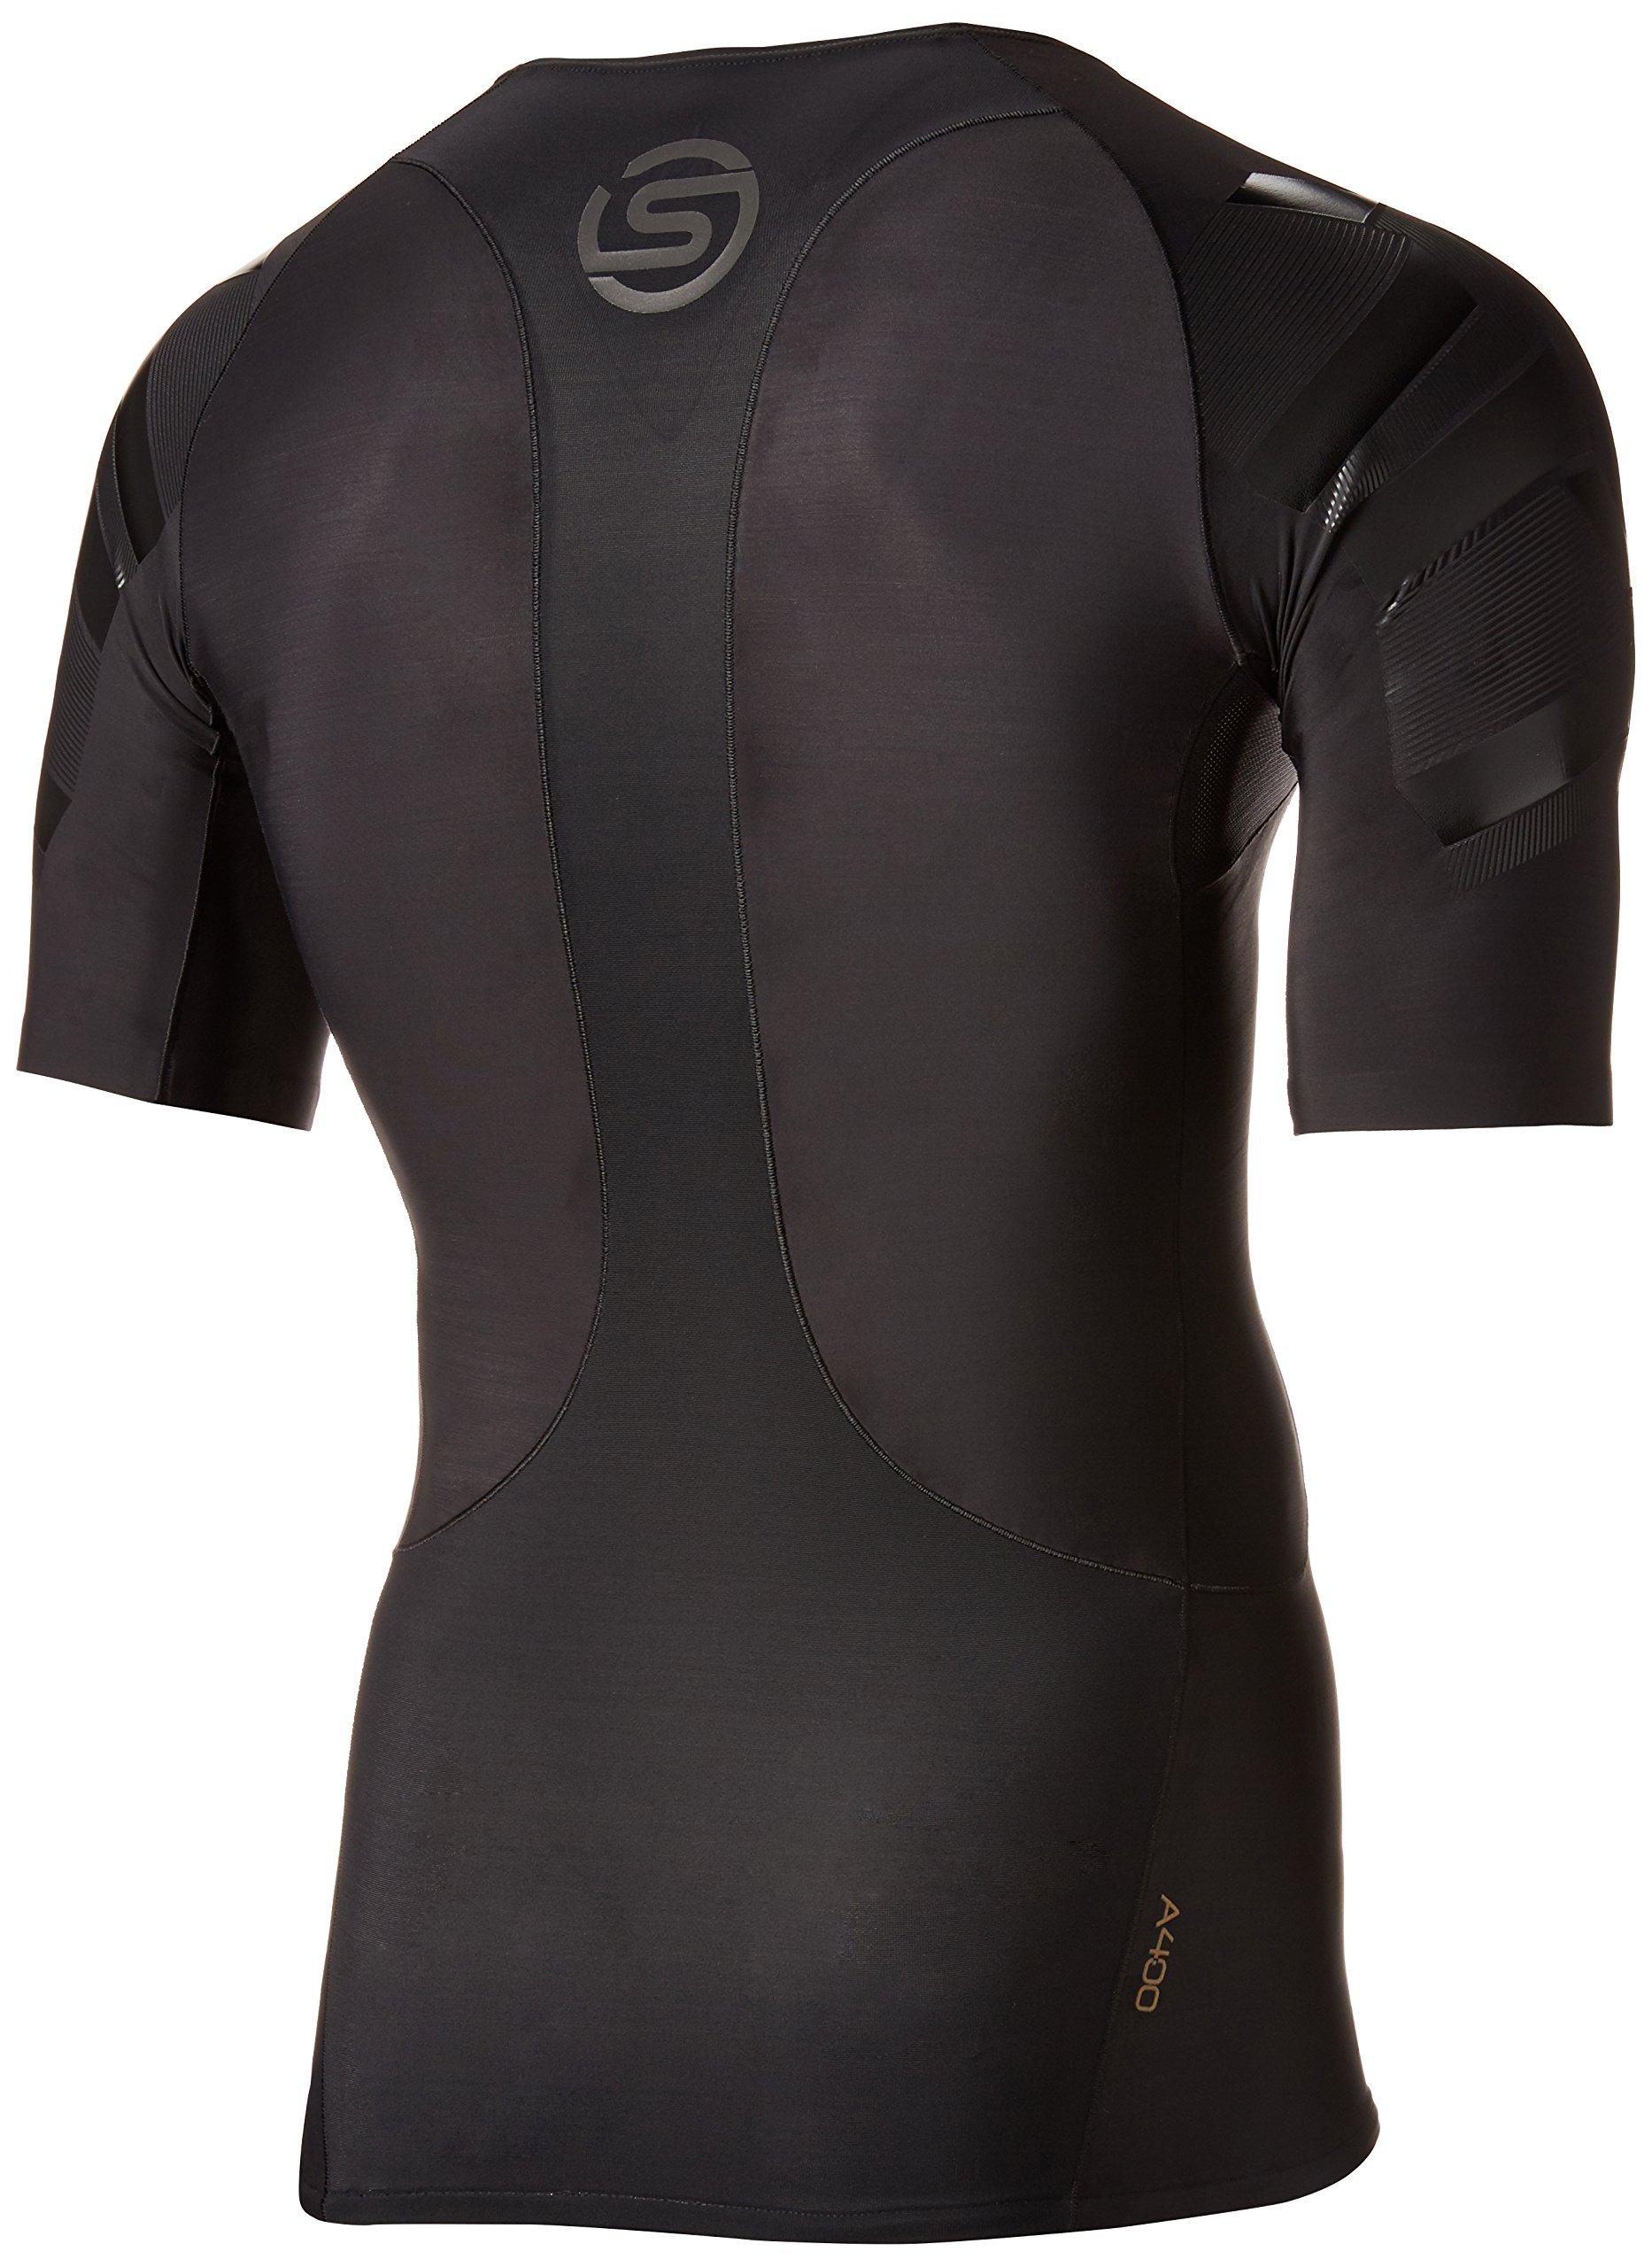 Skins Men's A400 Compression Short Sleeve Top, Oblique, X-Small by Skins (Image #2)